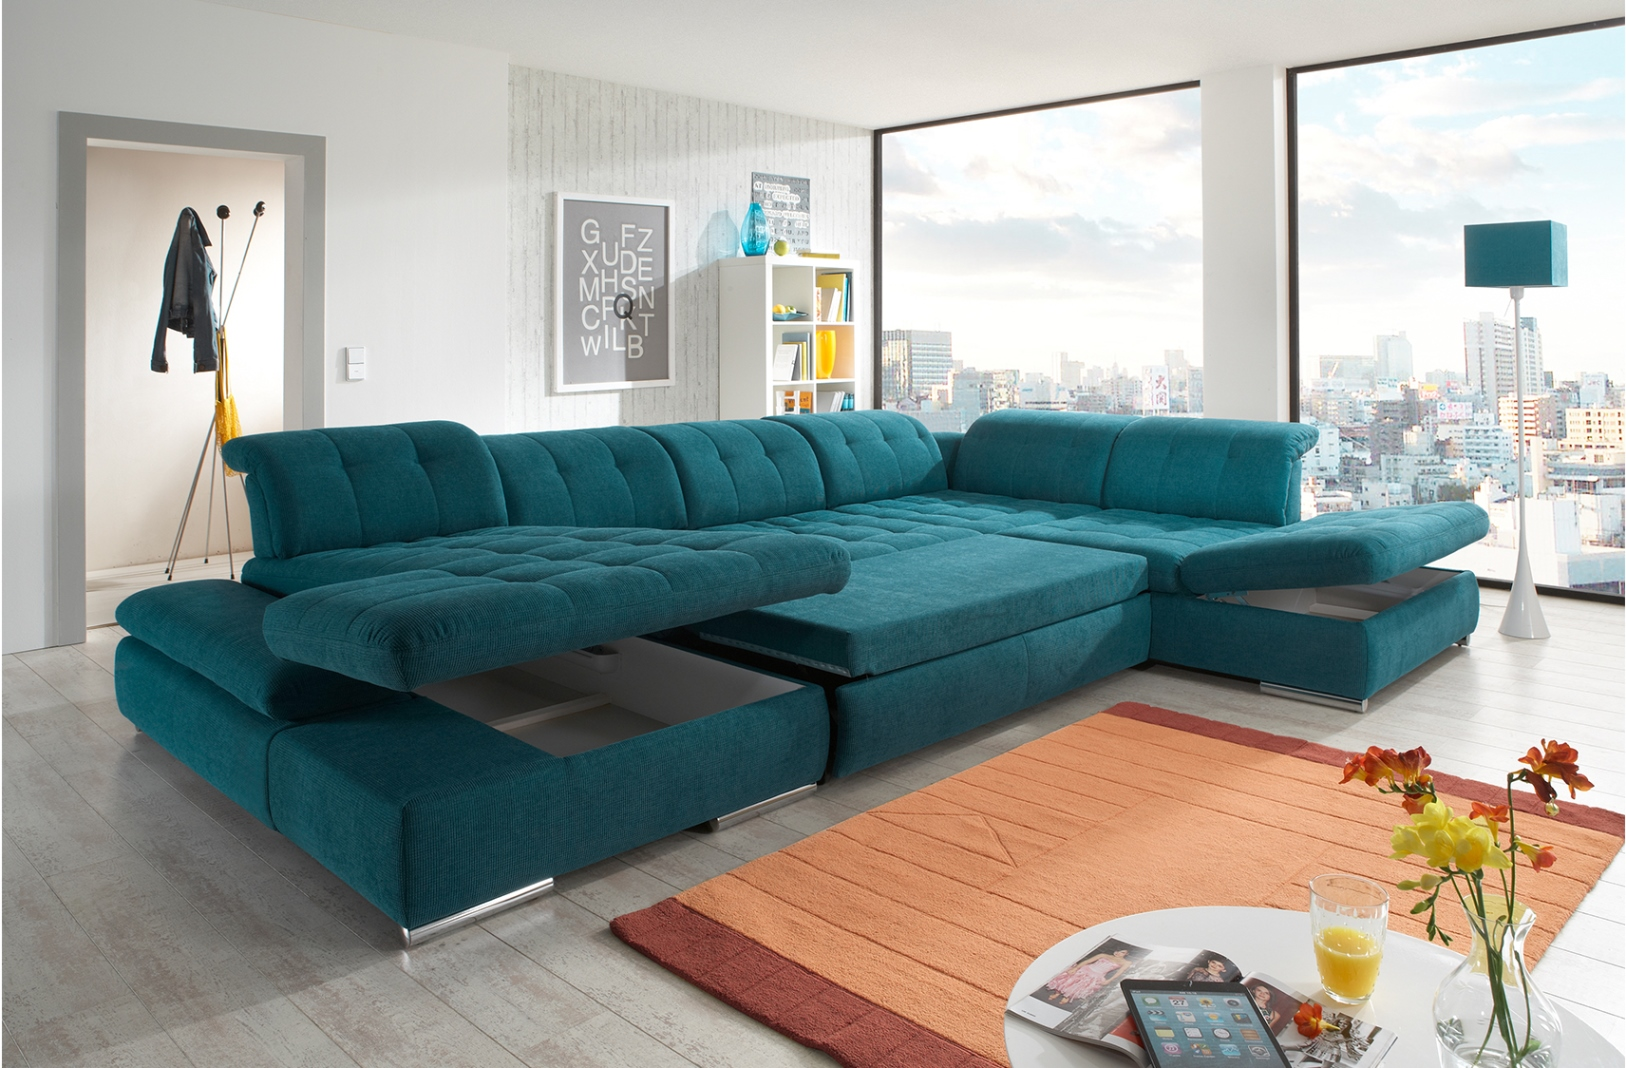 Double Chaise Sectional For Complete And Perfect Welcoming